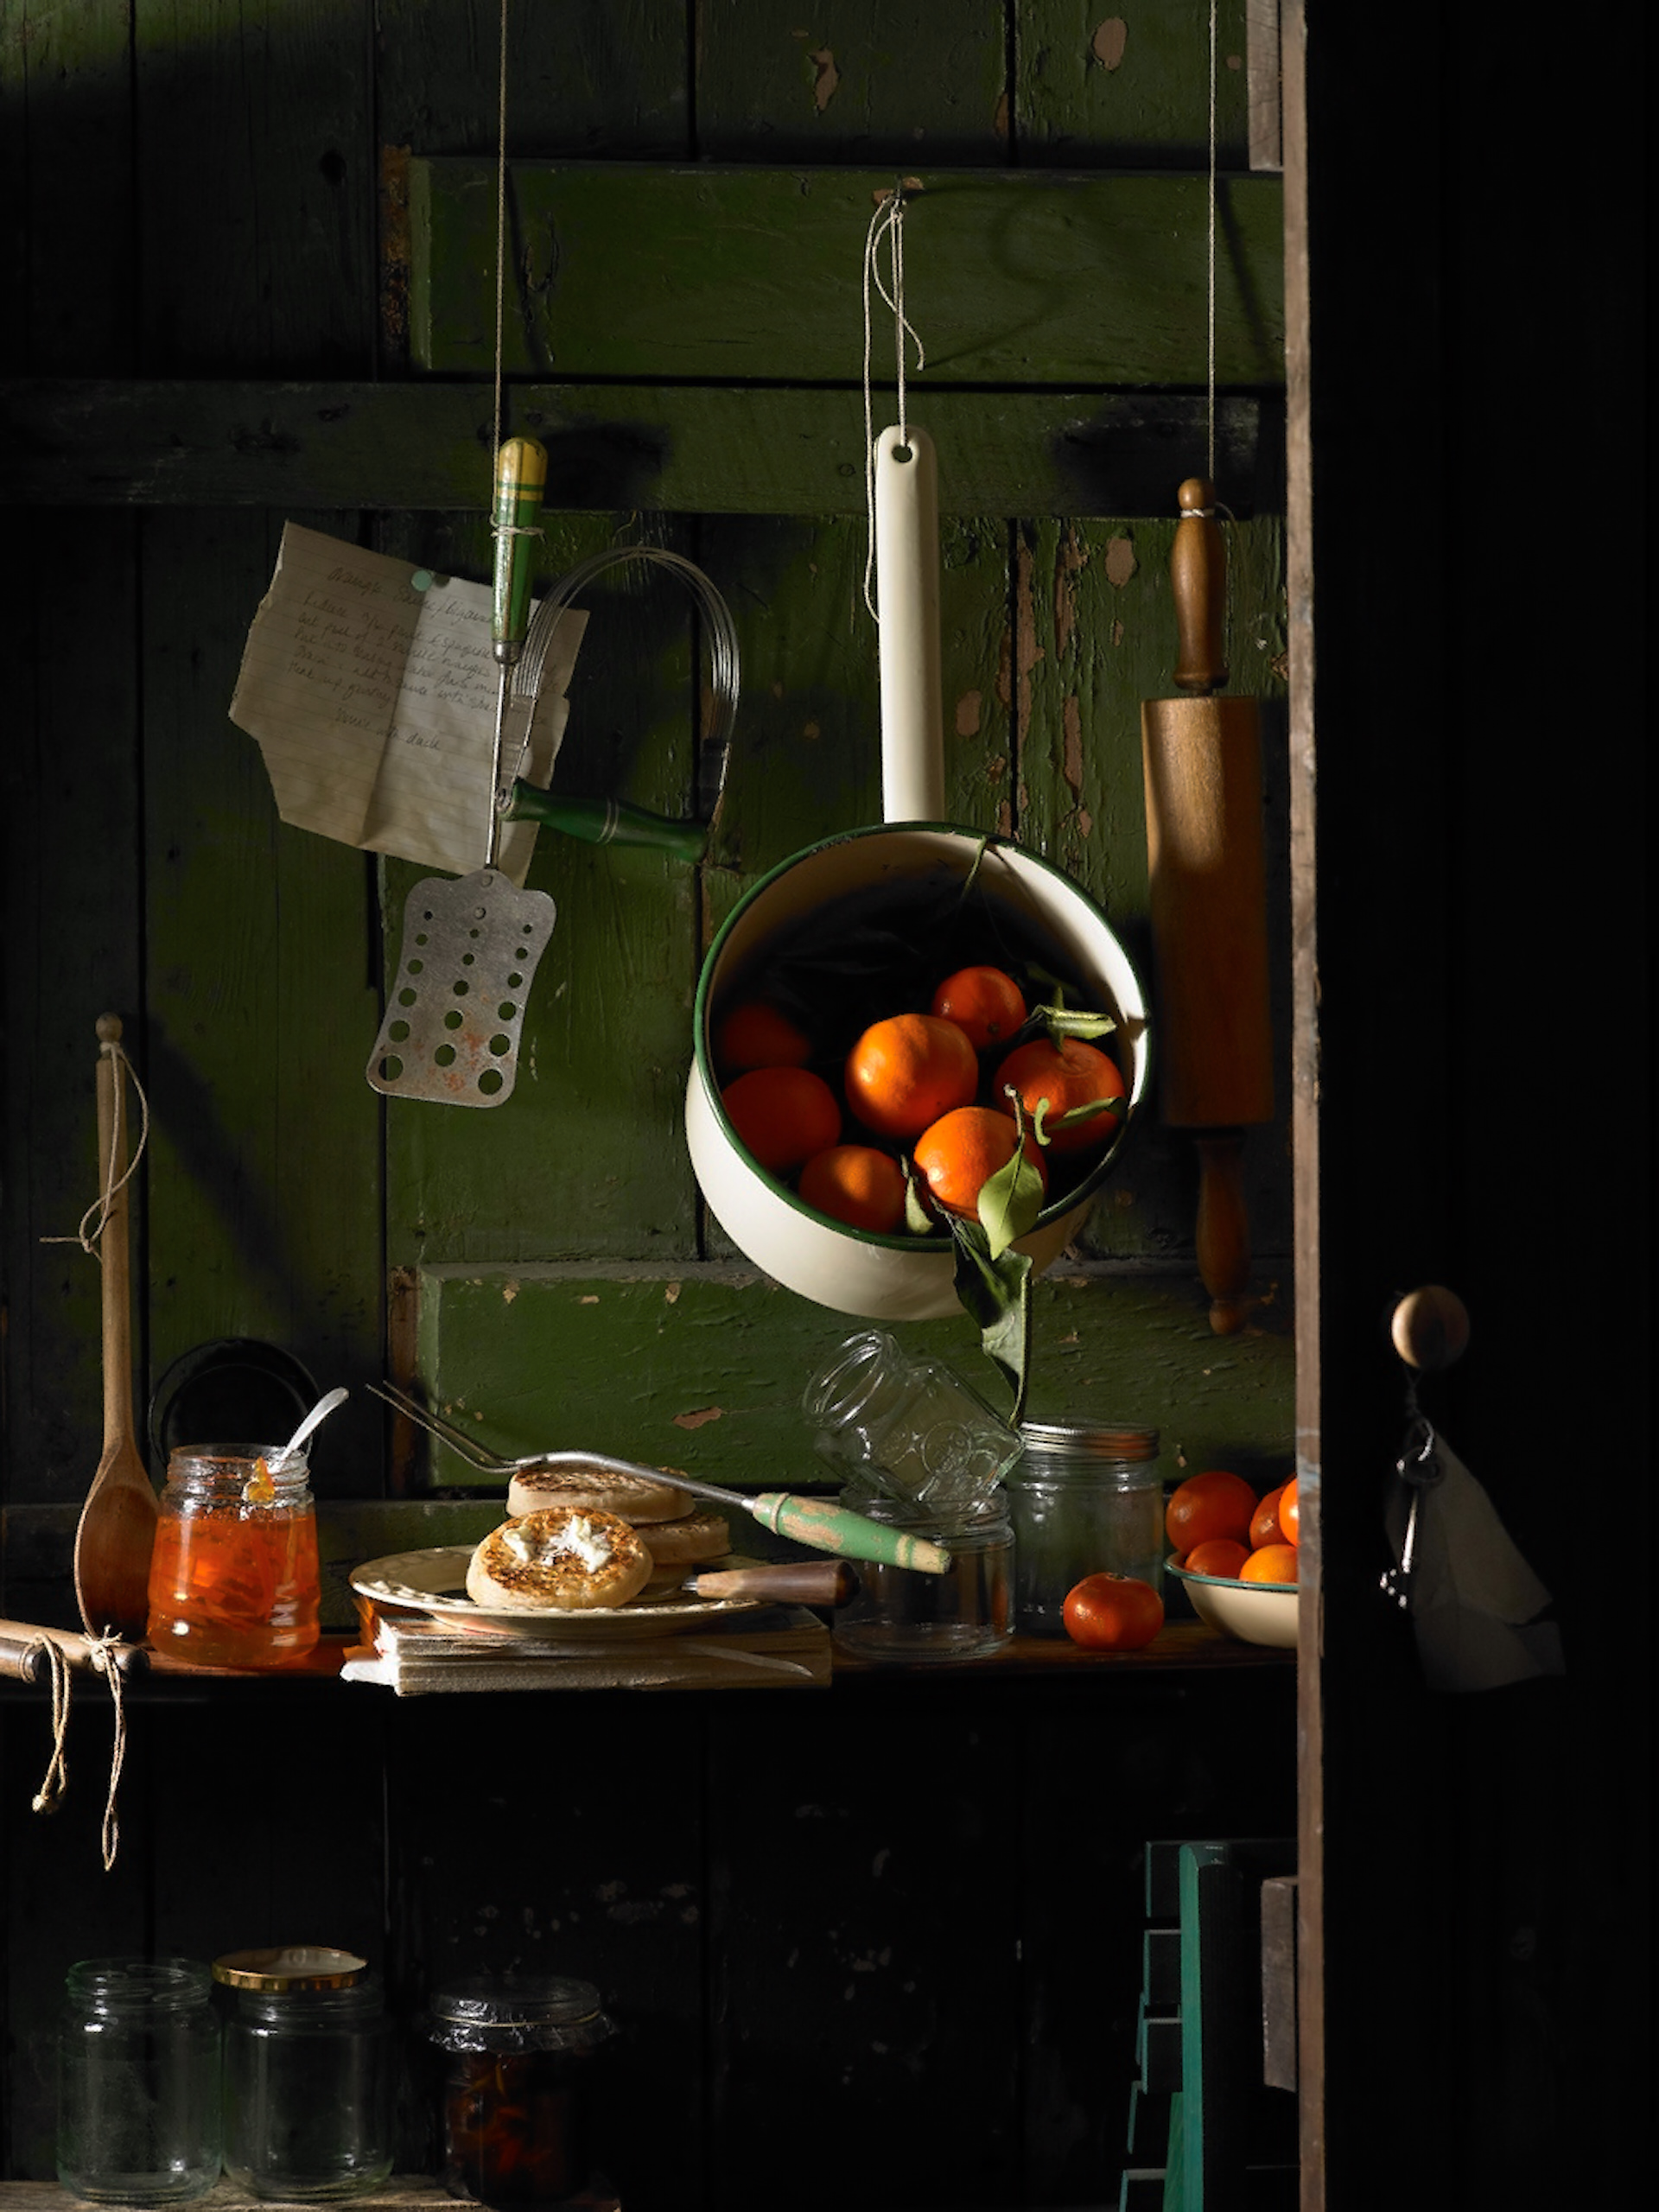 Old kitchen still life with oranges and crumpets